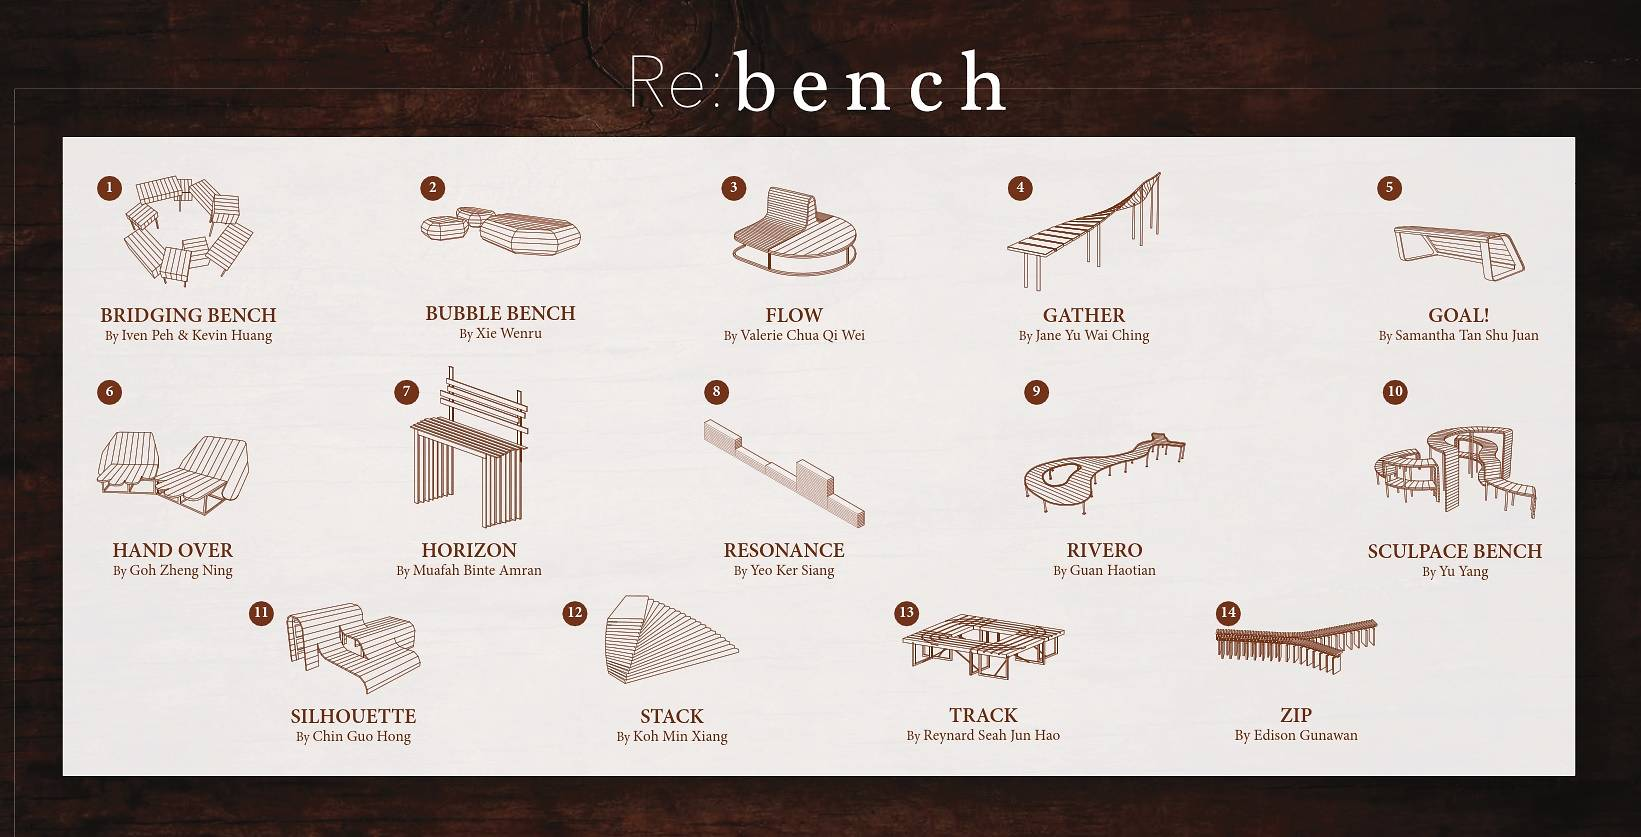 singapore-sports-hub-bench-map-names cna.jpg